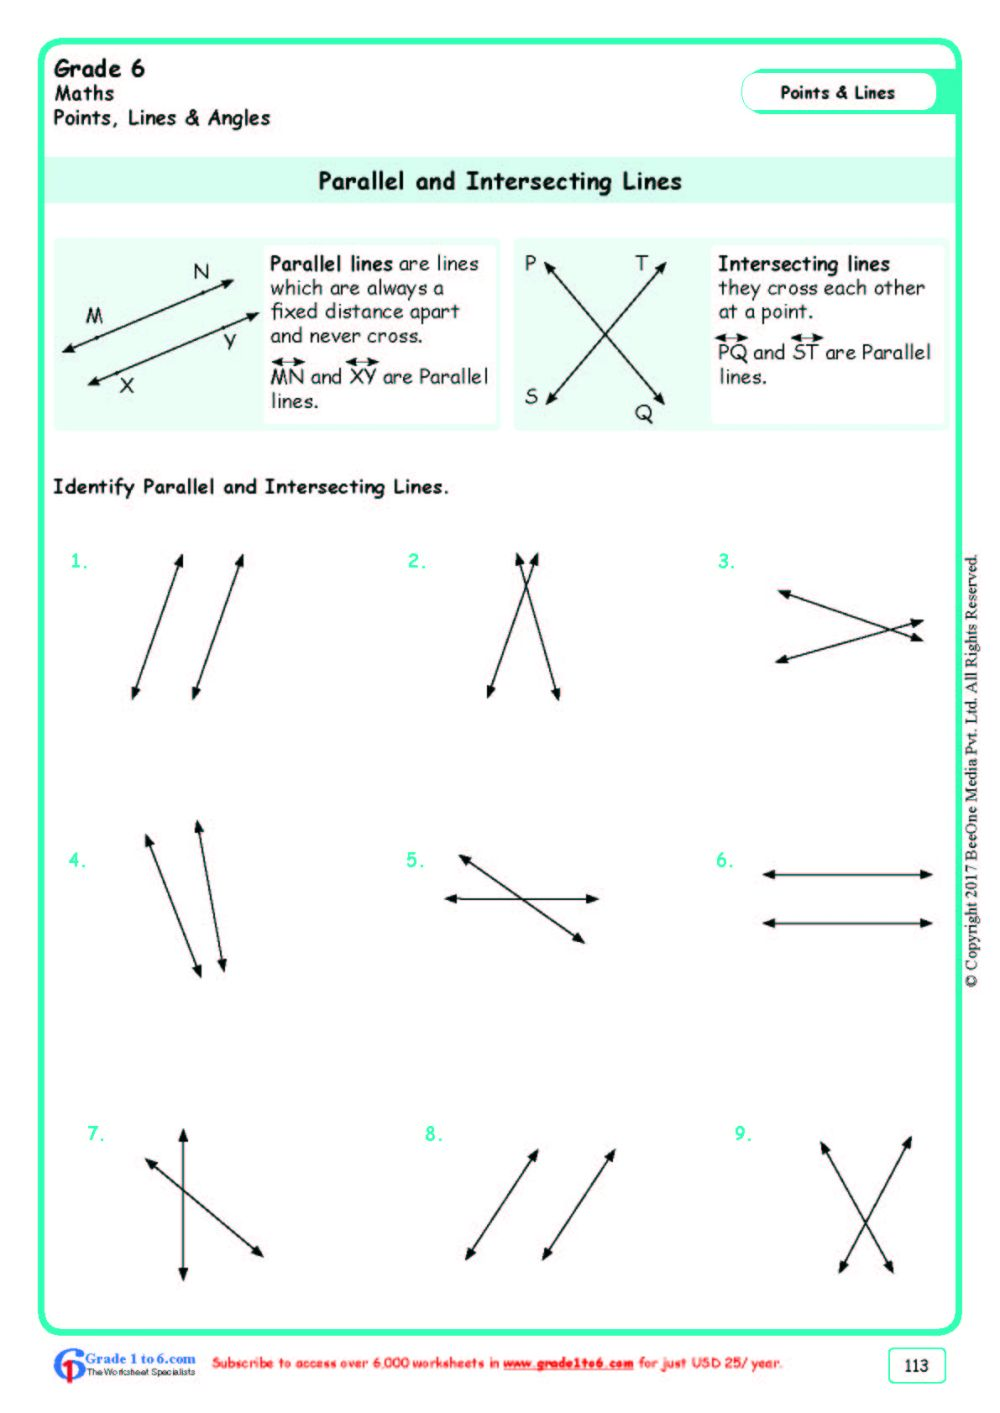 medium resolution of Parallel \u0026 Intersecting Lines Worksheets www.grade1to6.com